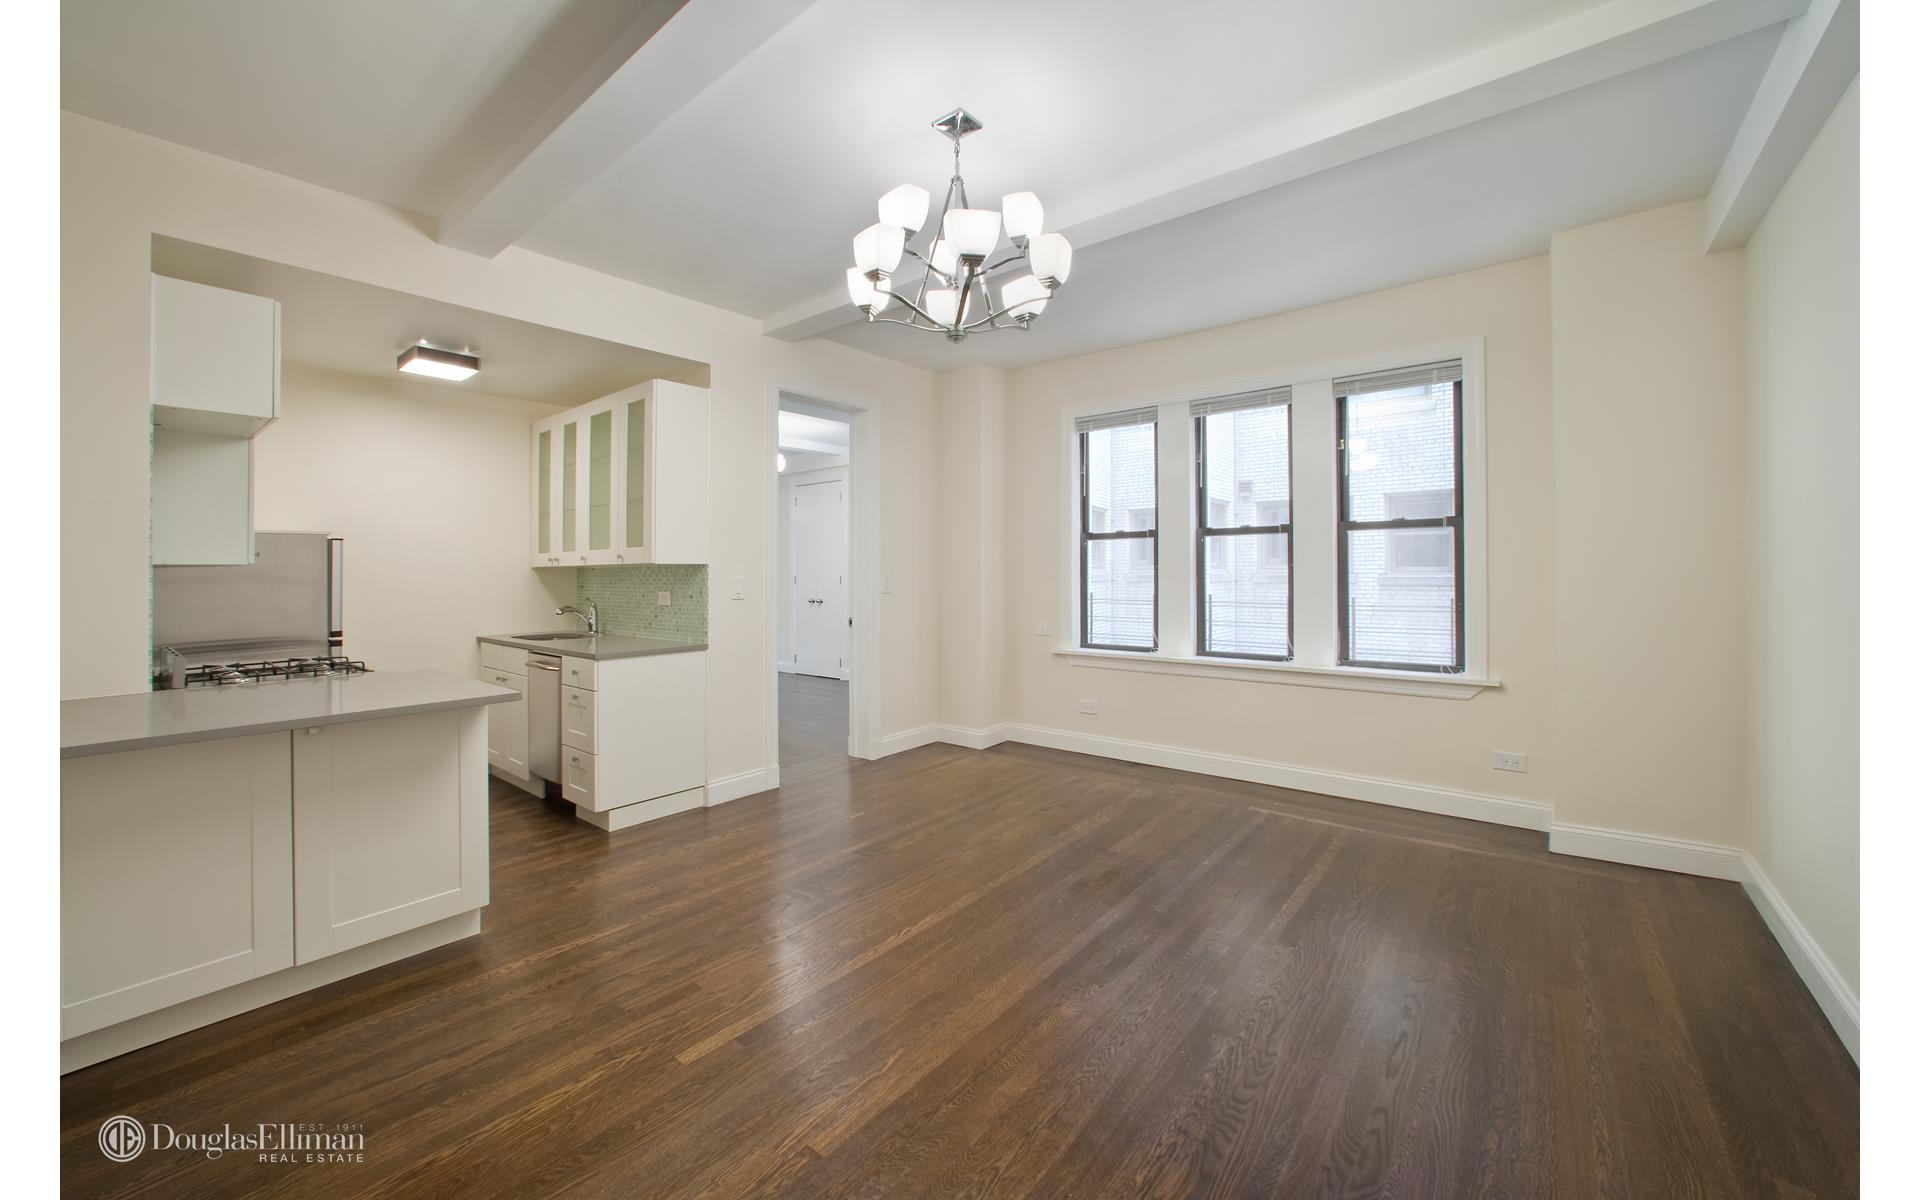 157 E 72 St New York, NY 10021· Upper East Side